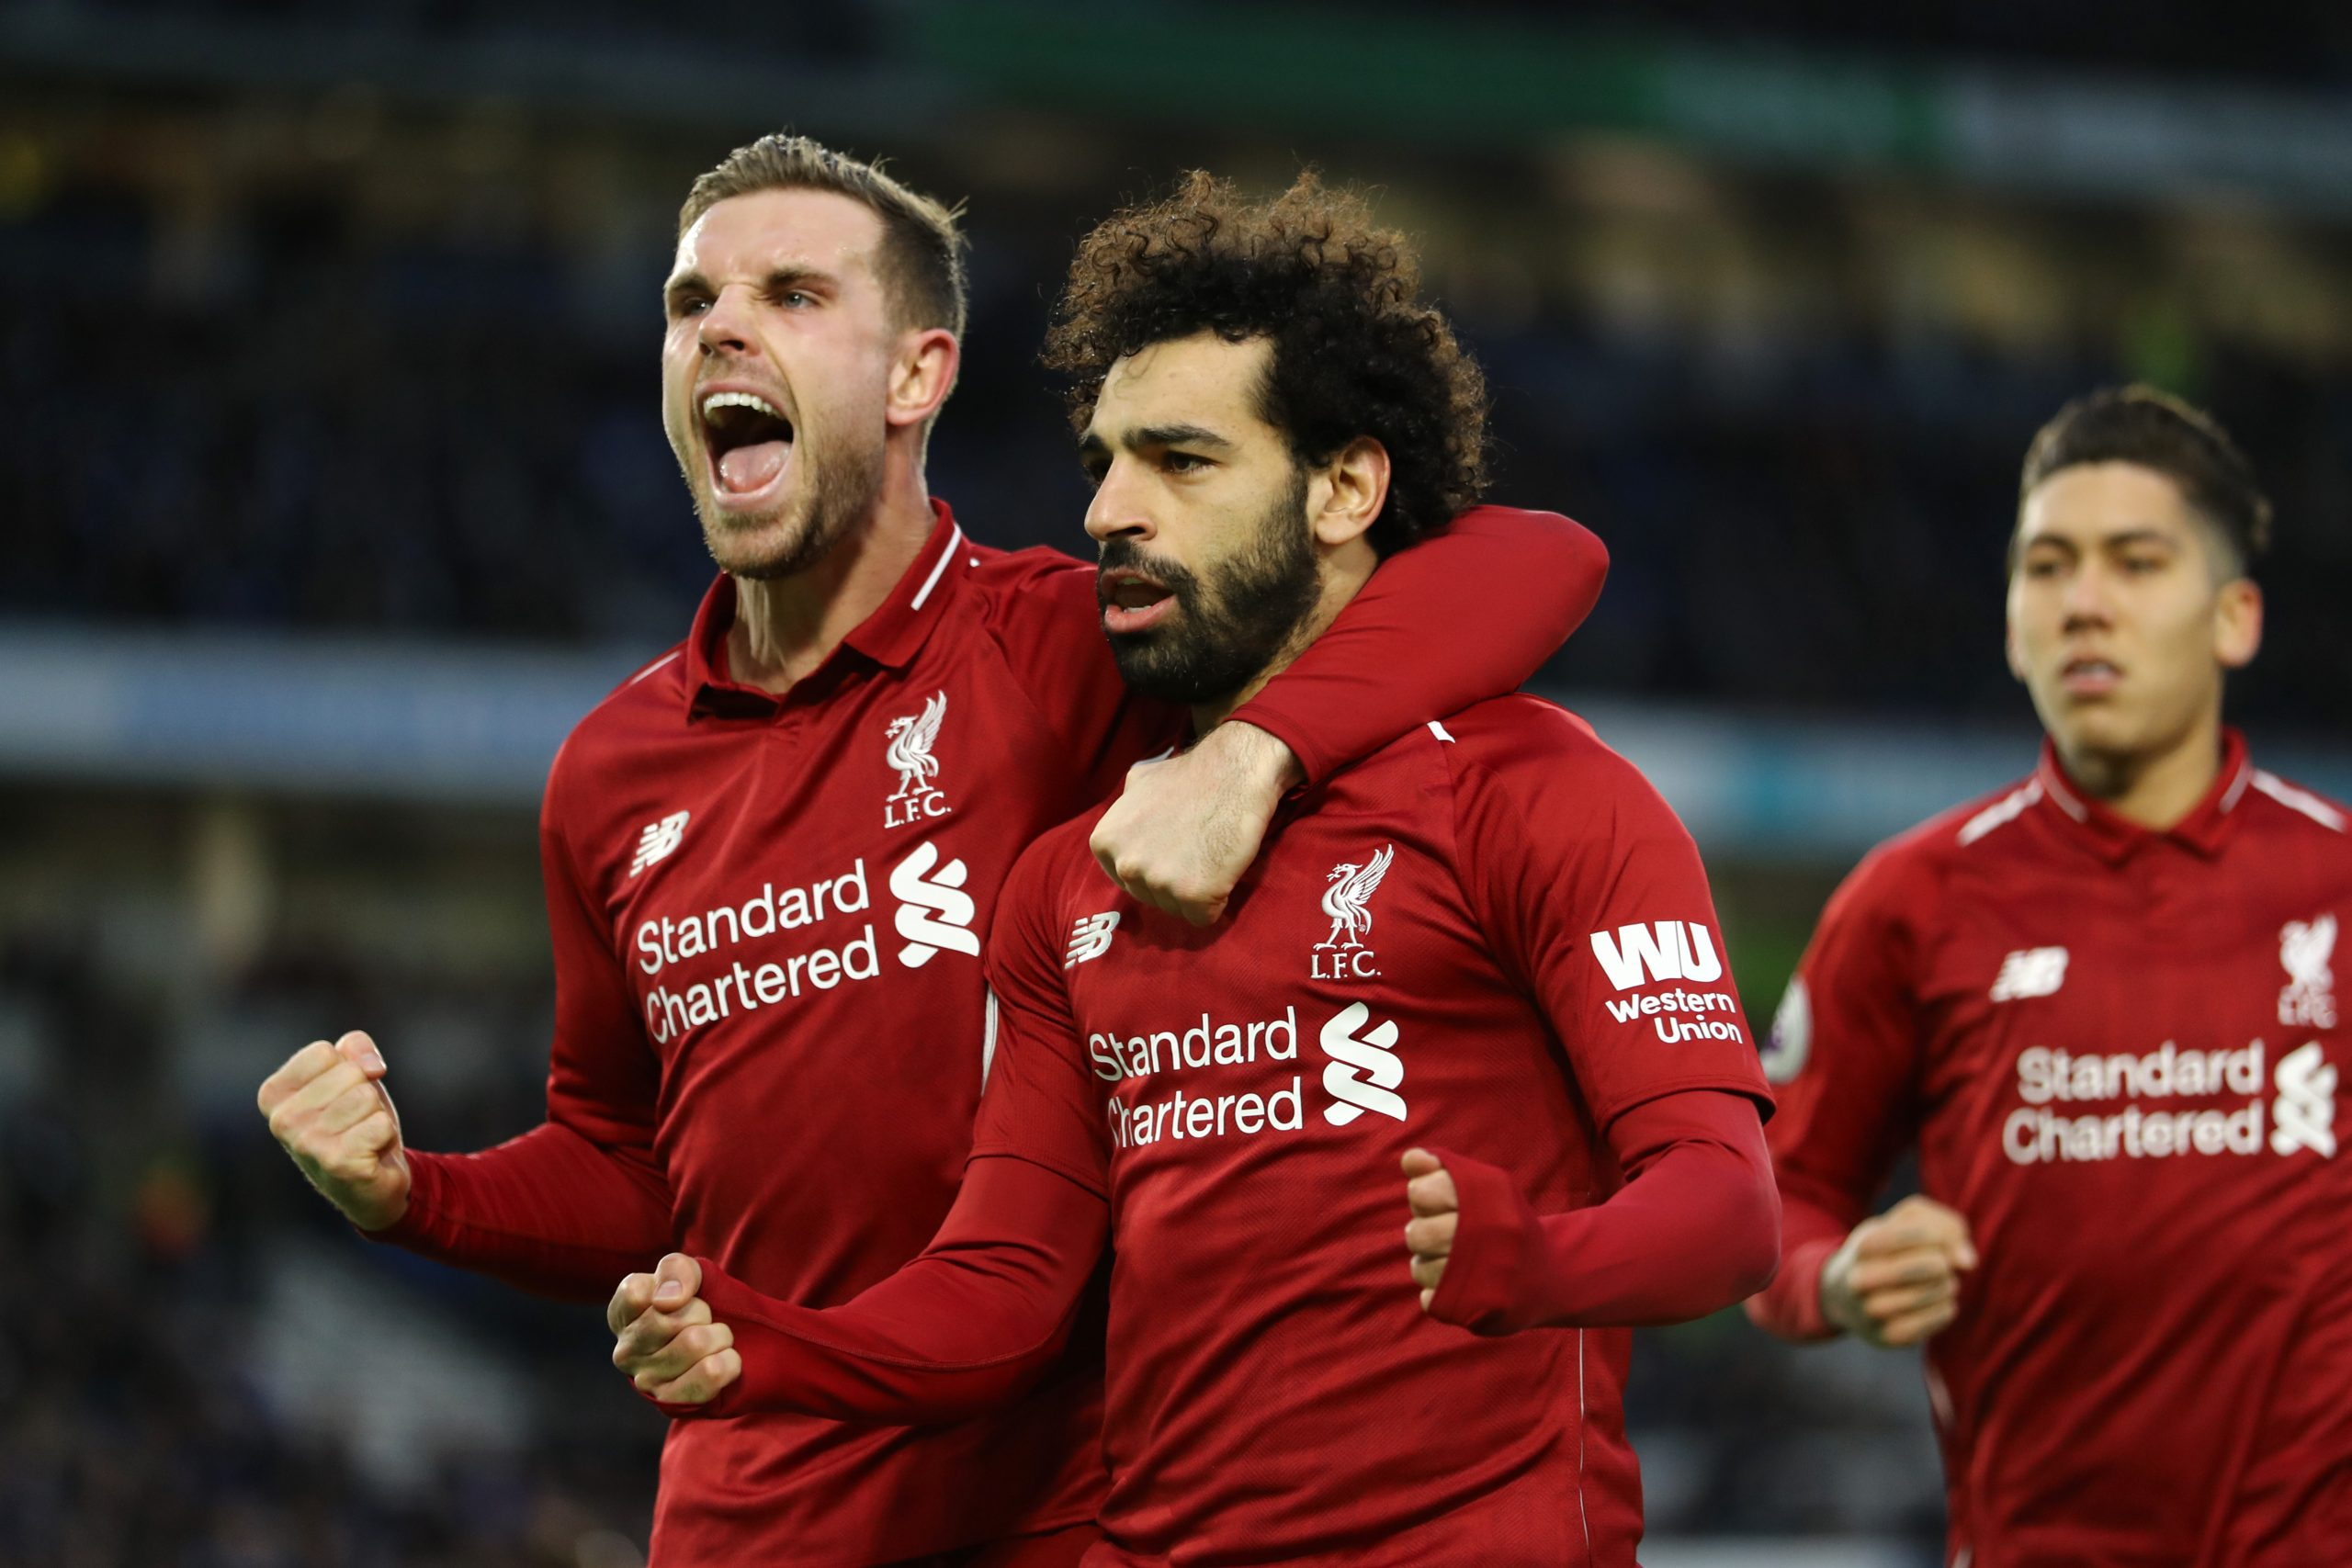 Mohamed Salah of Liverpool celebrates with team mate Jordan Henderson after scoring their first goal from the penalty spot against Brighton and Hove Albion in the January 2019 league fixture. (GETTY Images)